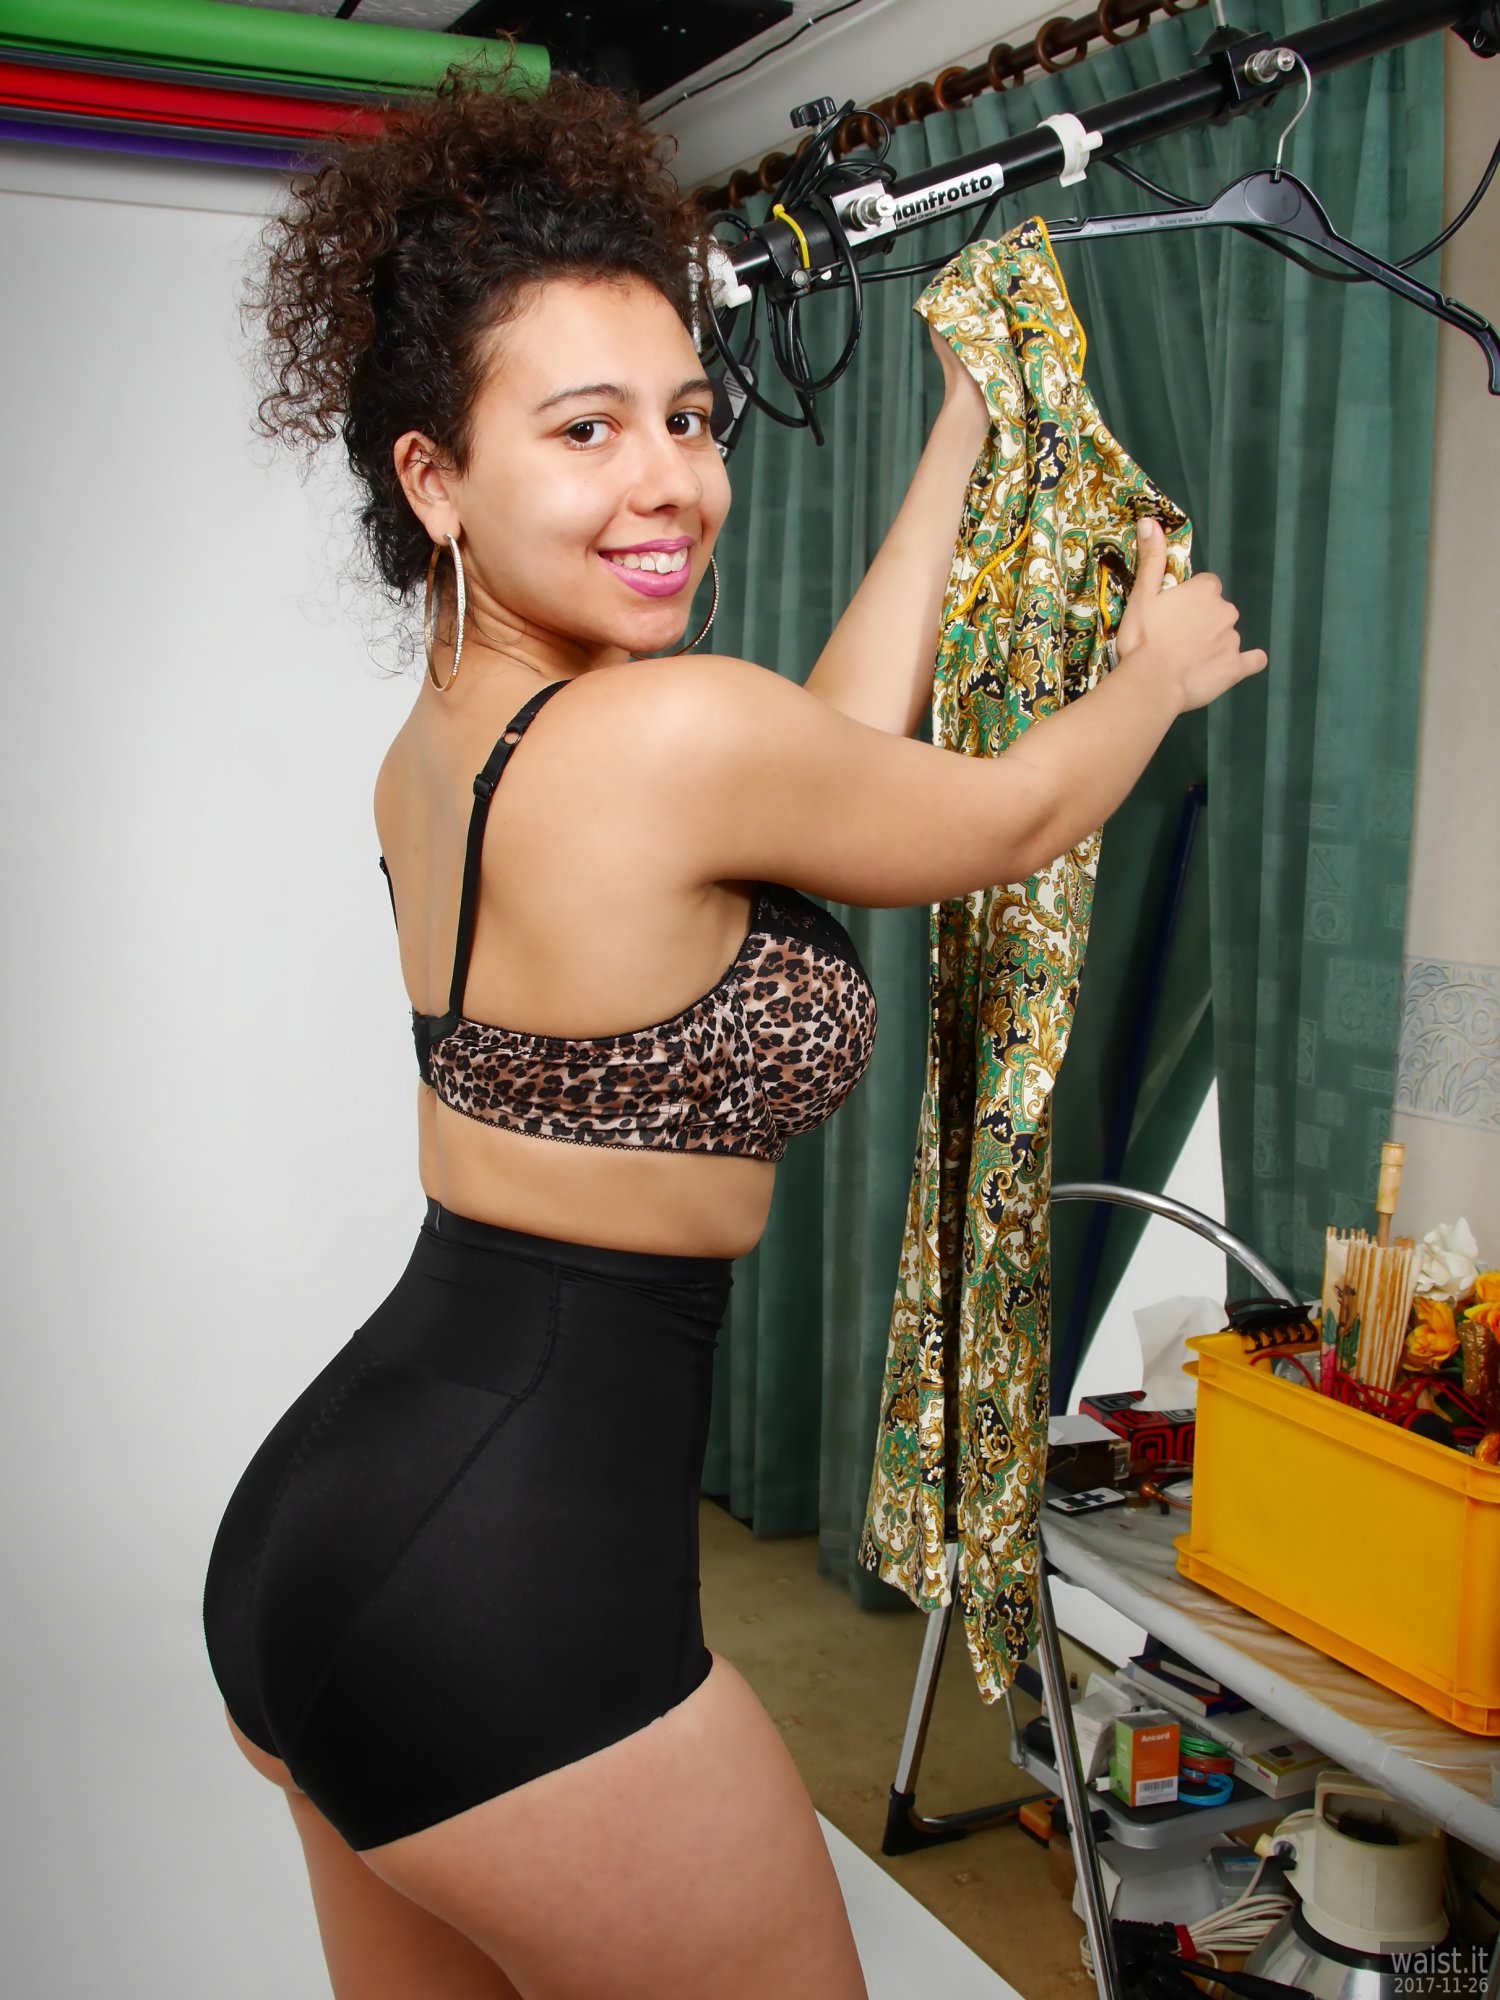 2017-11-26 Stephy Samer - showing off her fabulous figure in black animal-print bra and black, high-waist, firm-control, pantie girdle worn as hotpants